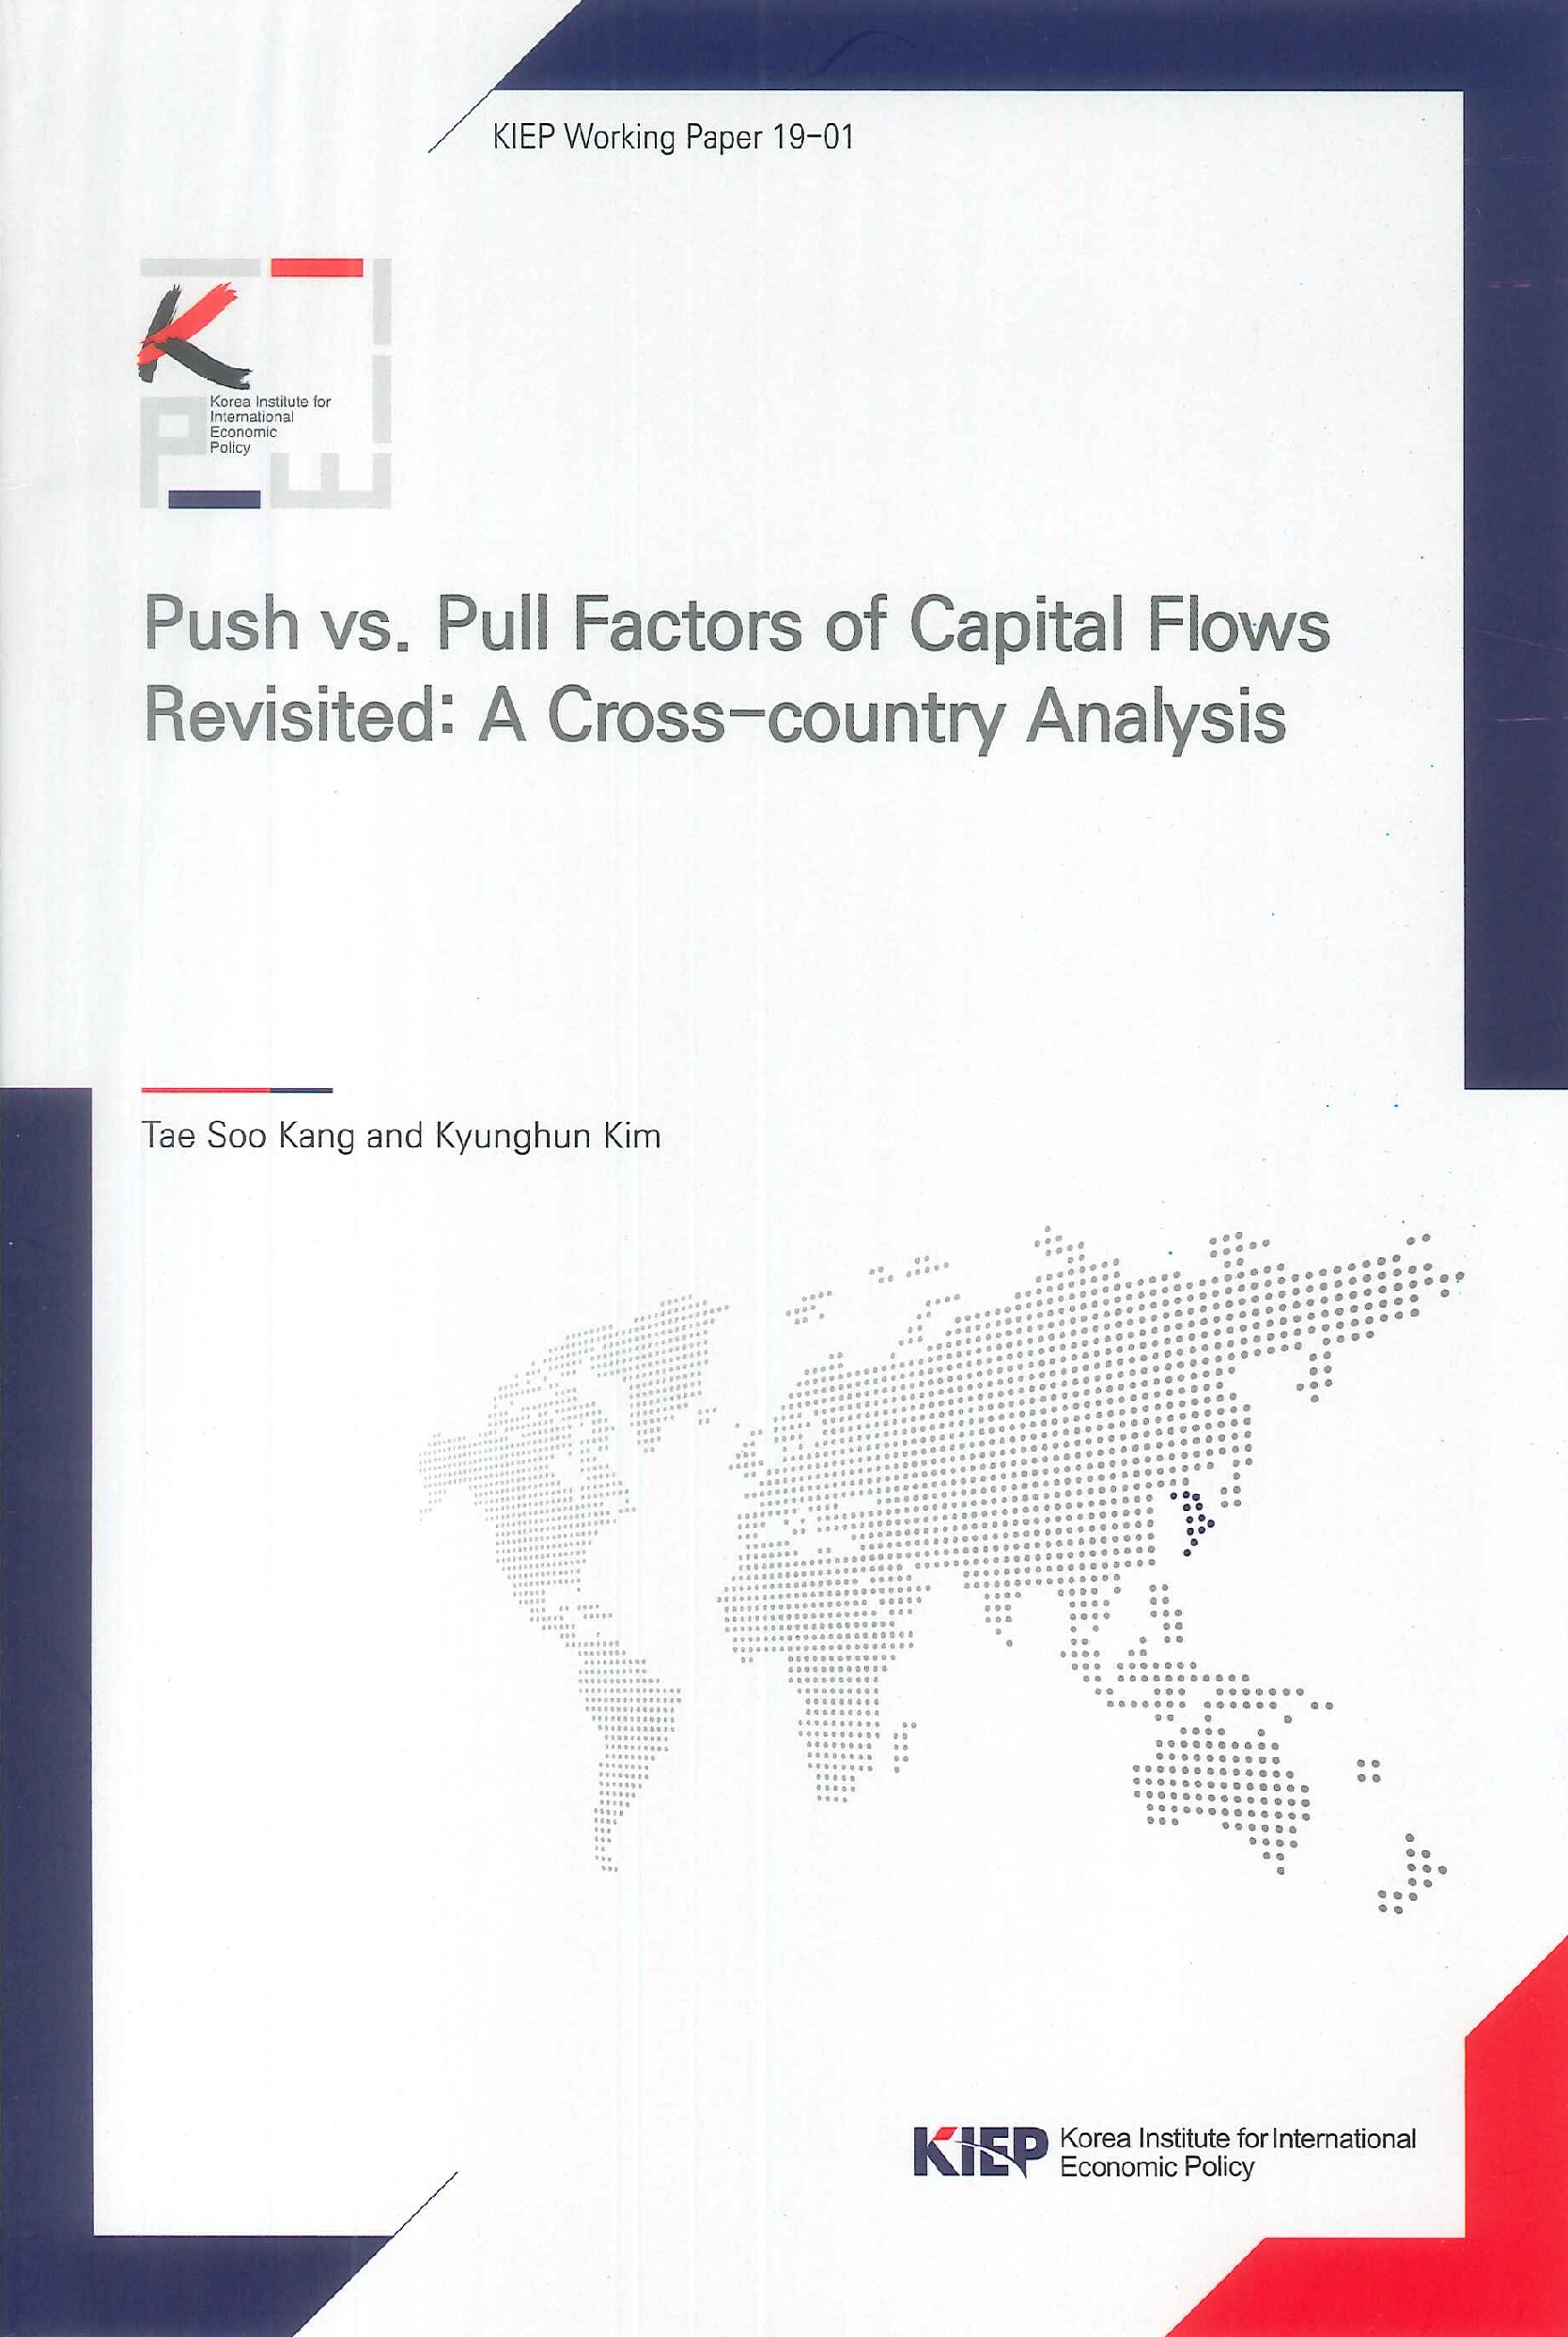 Push vs. pull factors of capital flows revisited:a cross-country analysis